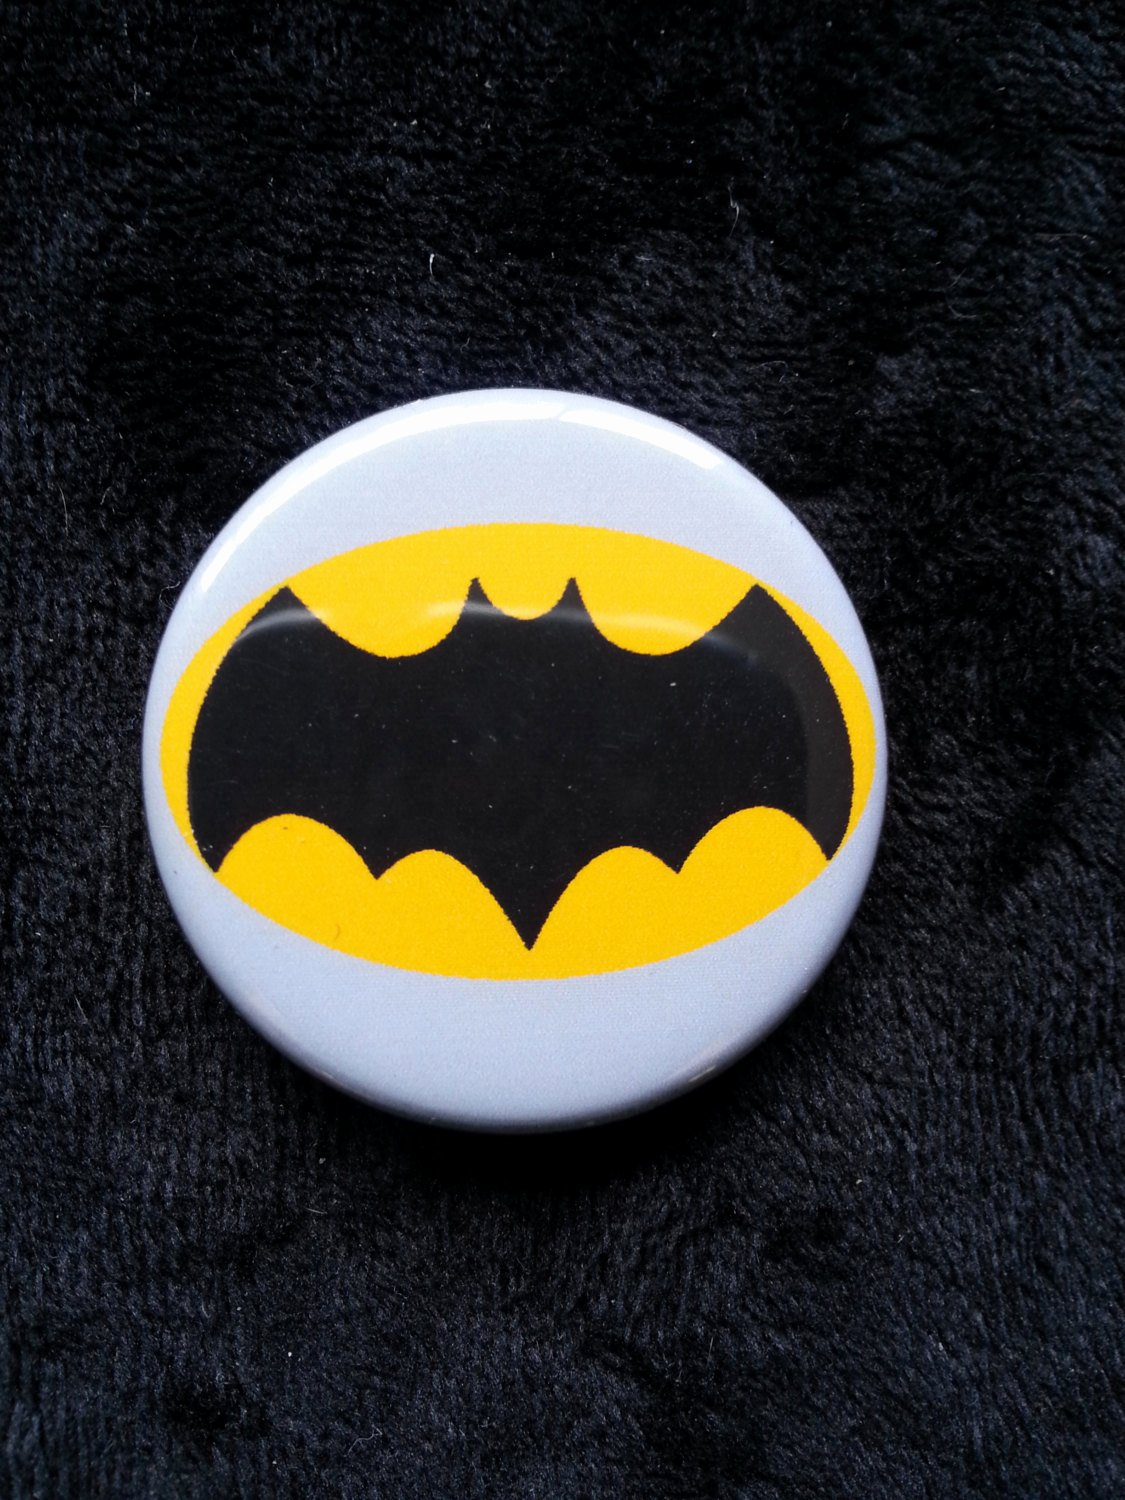 Batman Chest Emblem Awesome Batman Chest Symbol